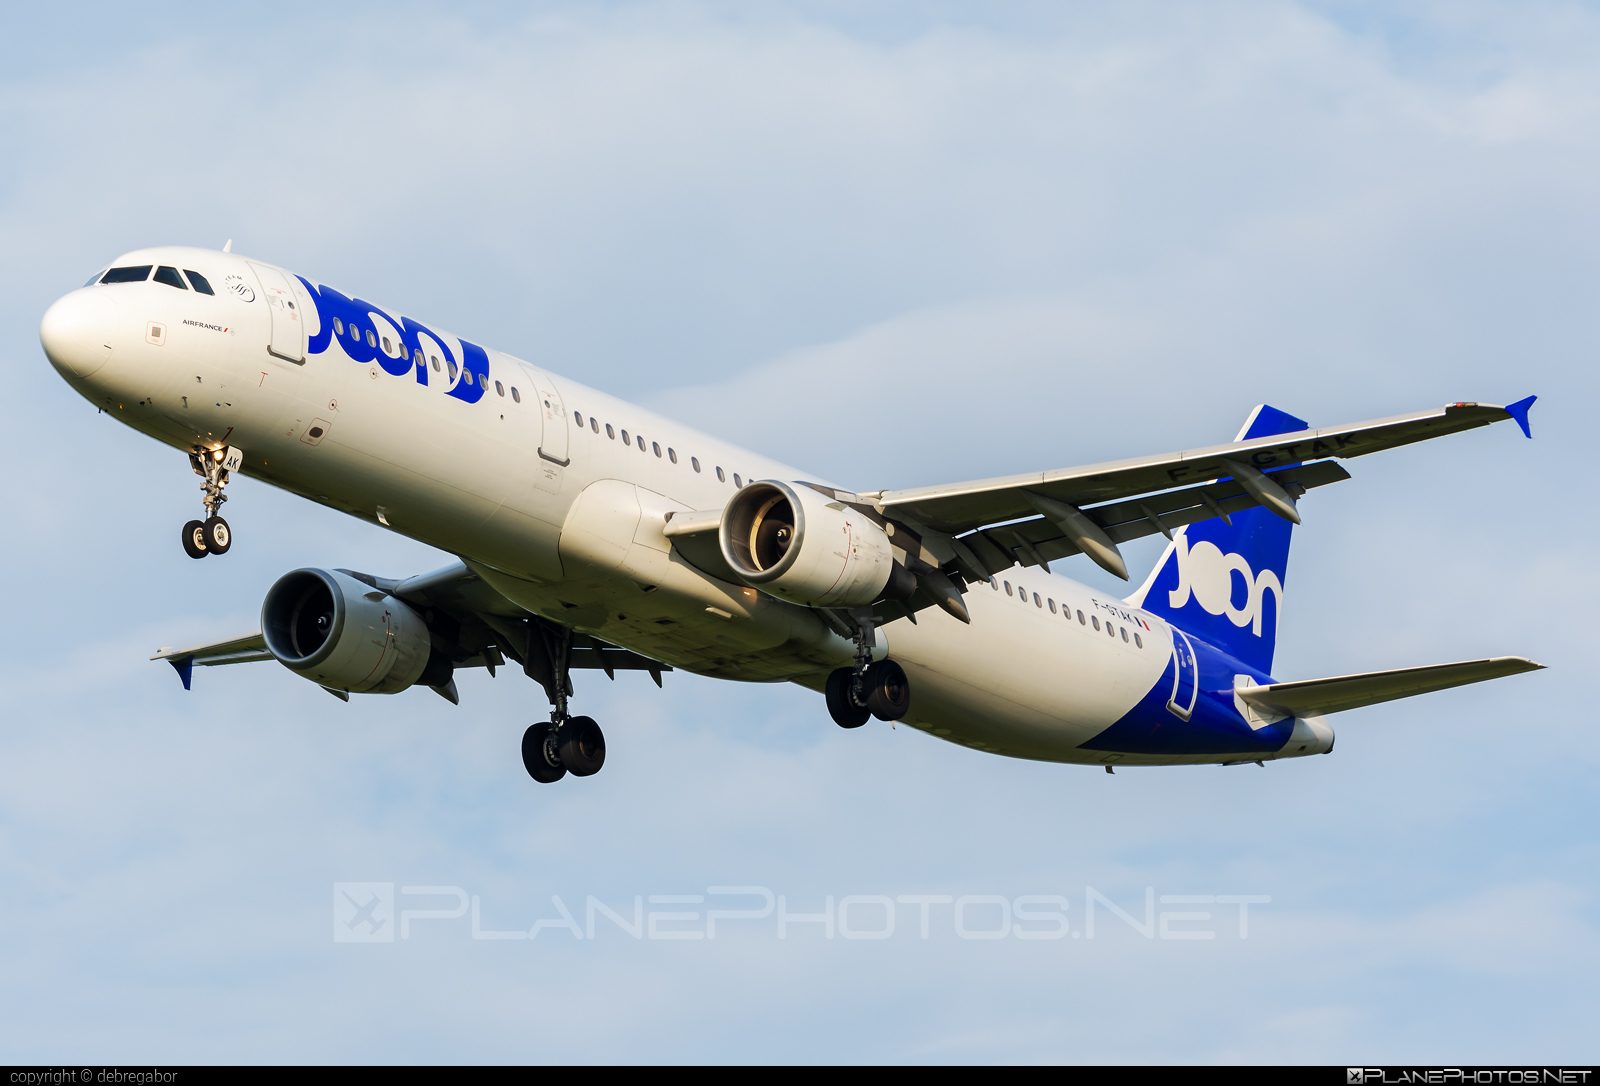 Airbus A321-211 - F-GTAK operated by Joon #a320family #a321 #airbus #airbus321 #joon